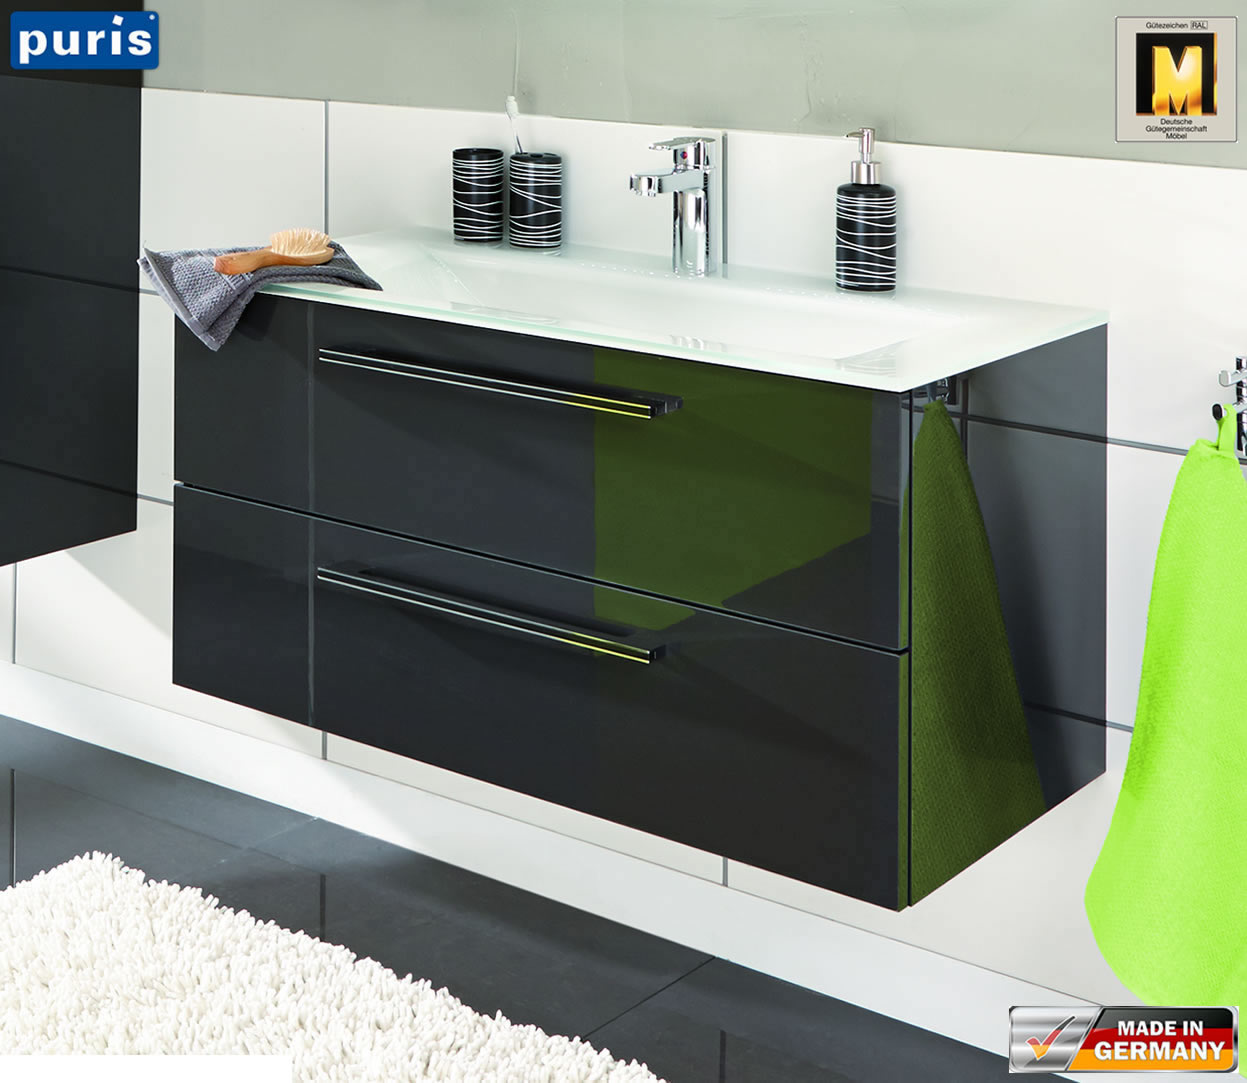 puris brillant waschtisch set 90 cm wua3390e9 wms950921 impuls home. Black Bedroom Furniture Sets. Home Design Ideas